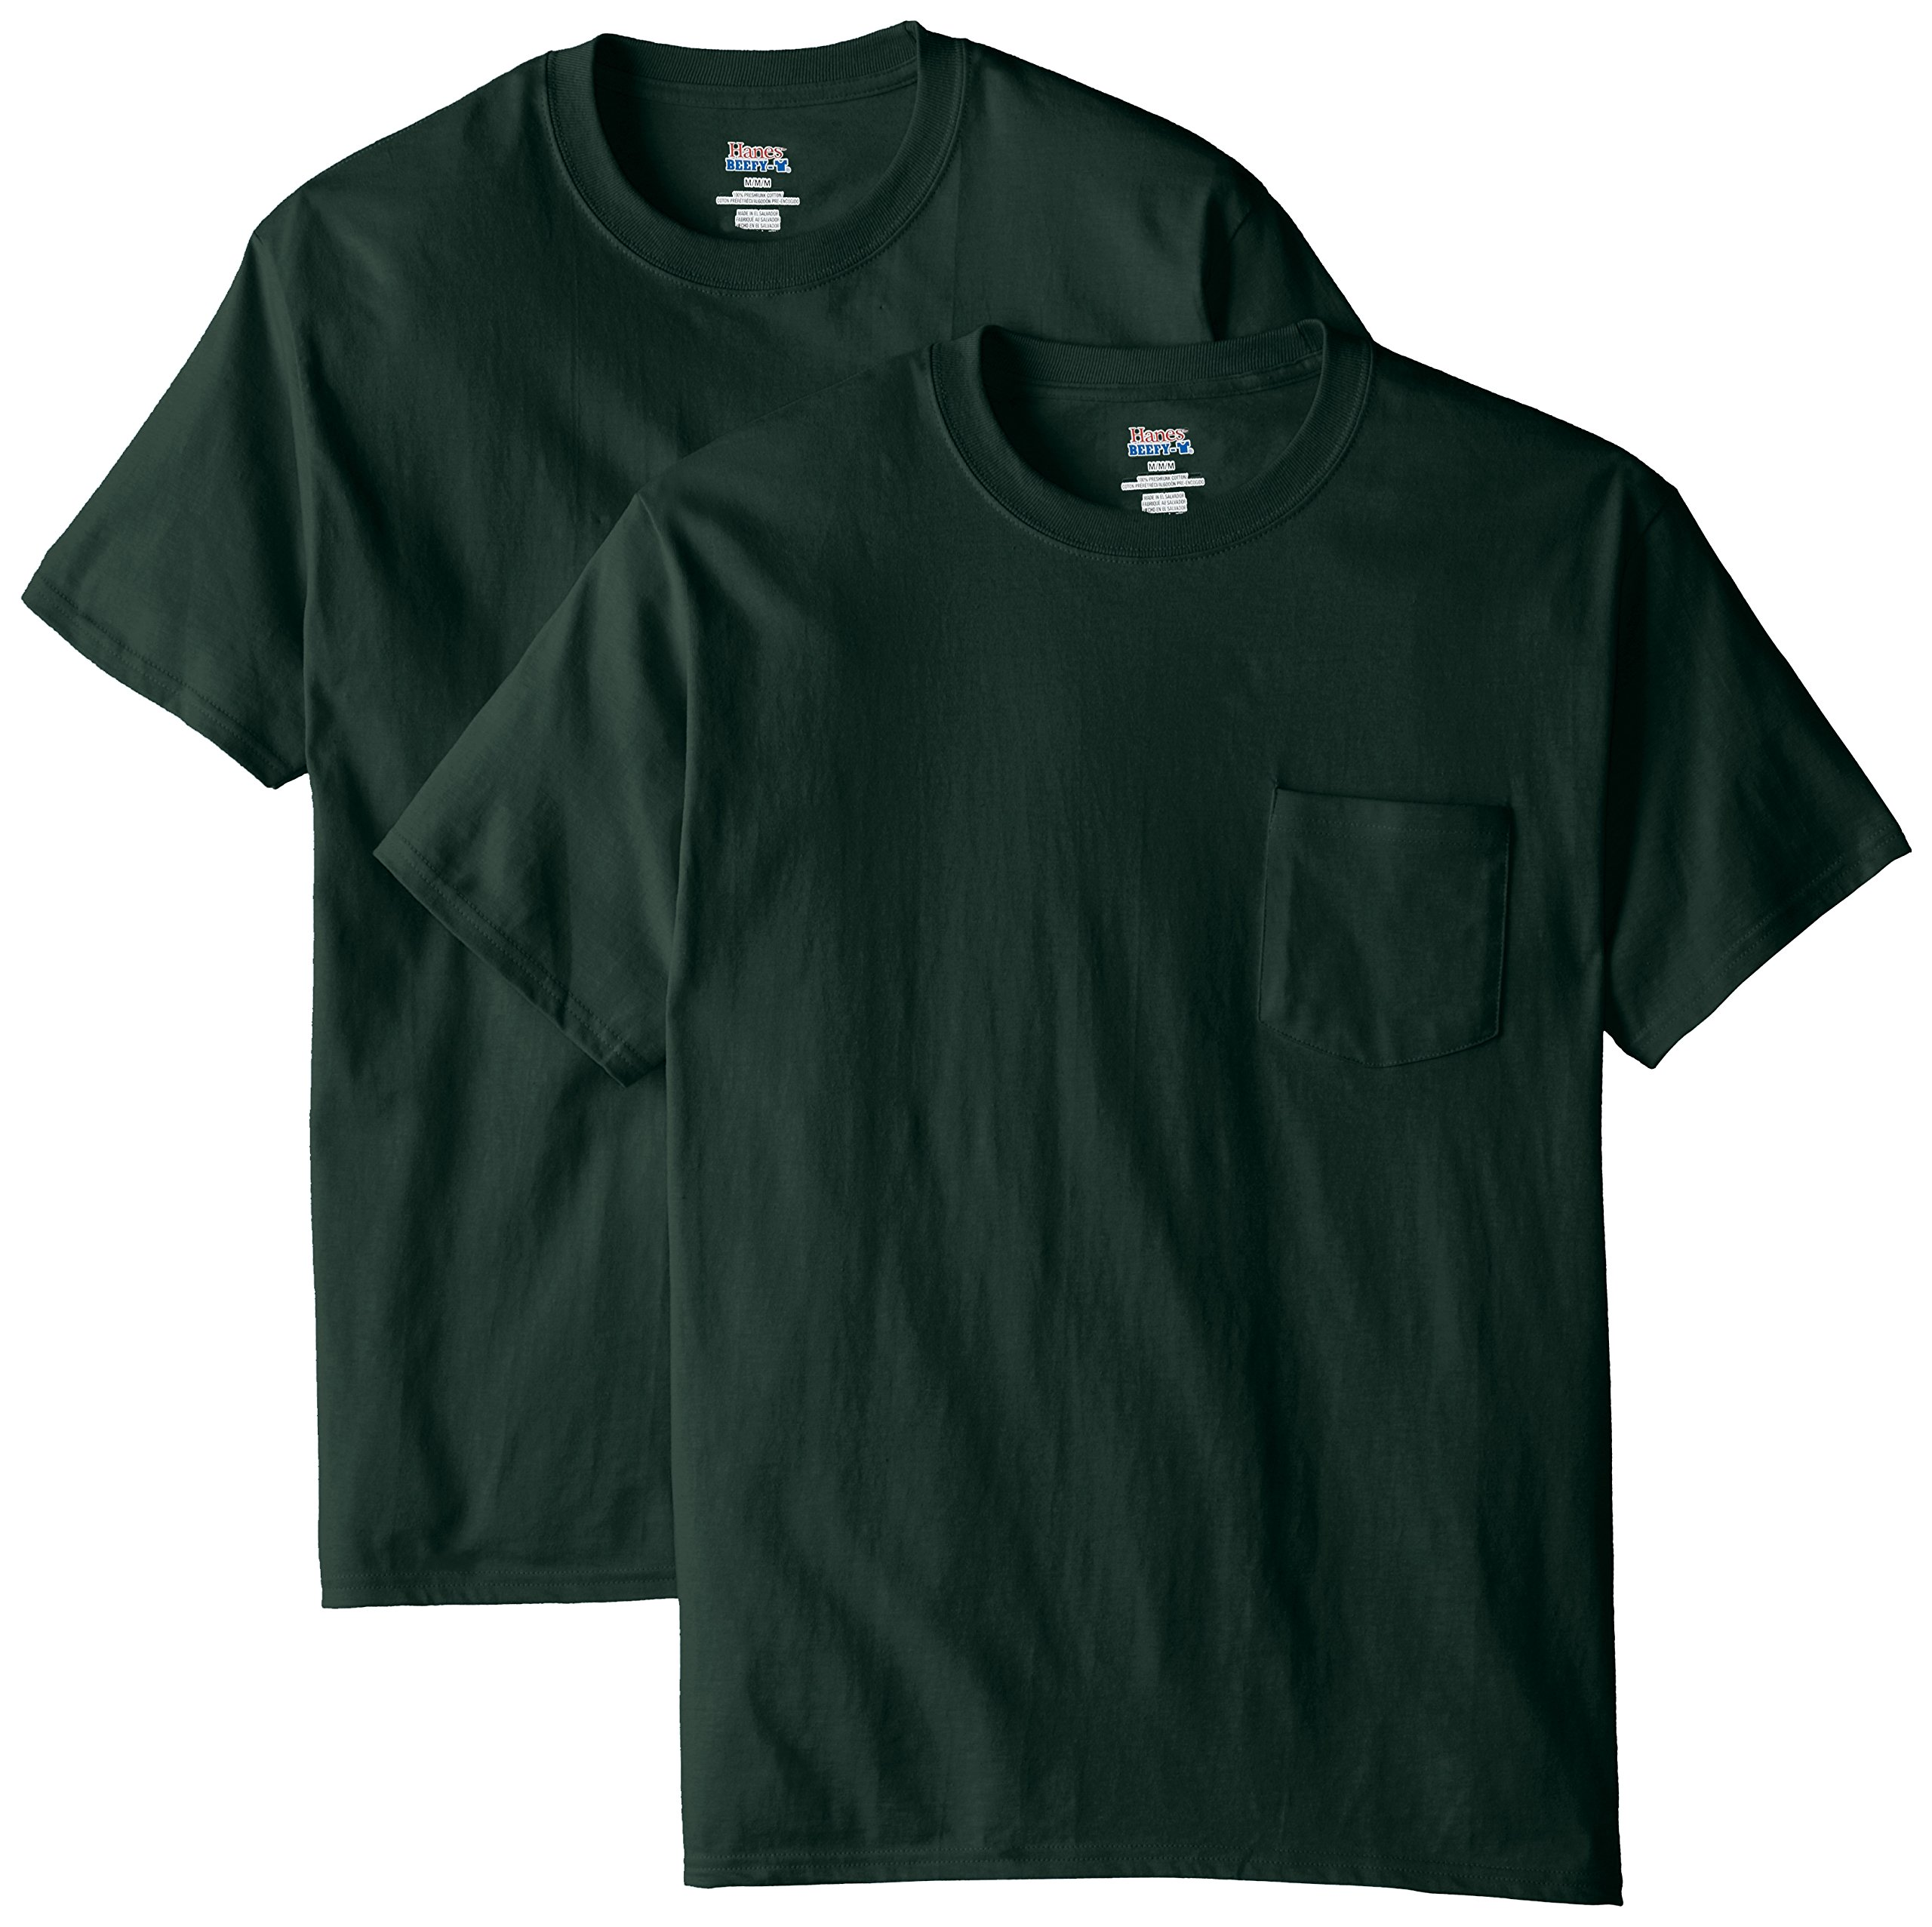 Hanes Men's 2 Pack Short Sleeve Pocket Beefy-T, Deep Forest, Small